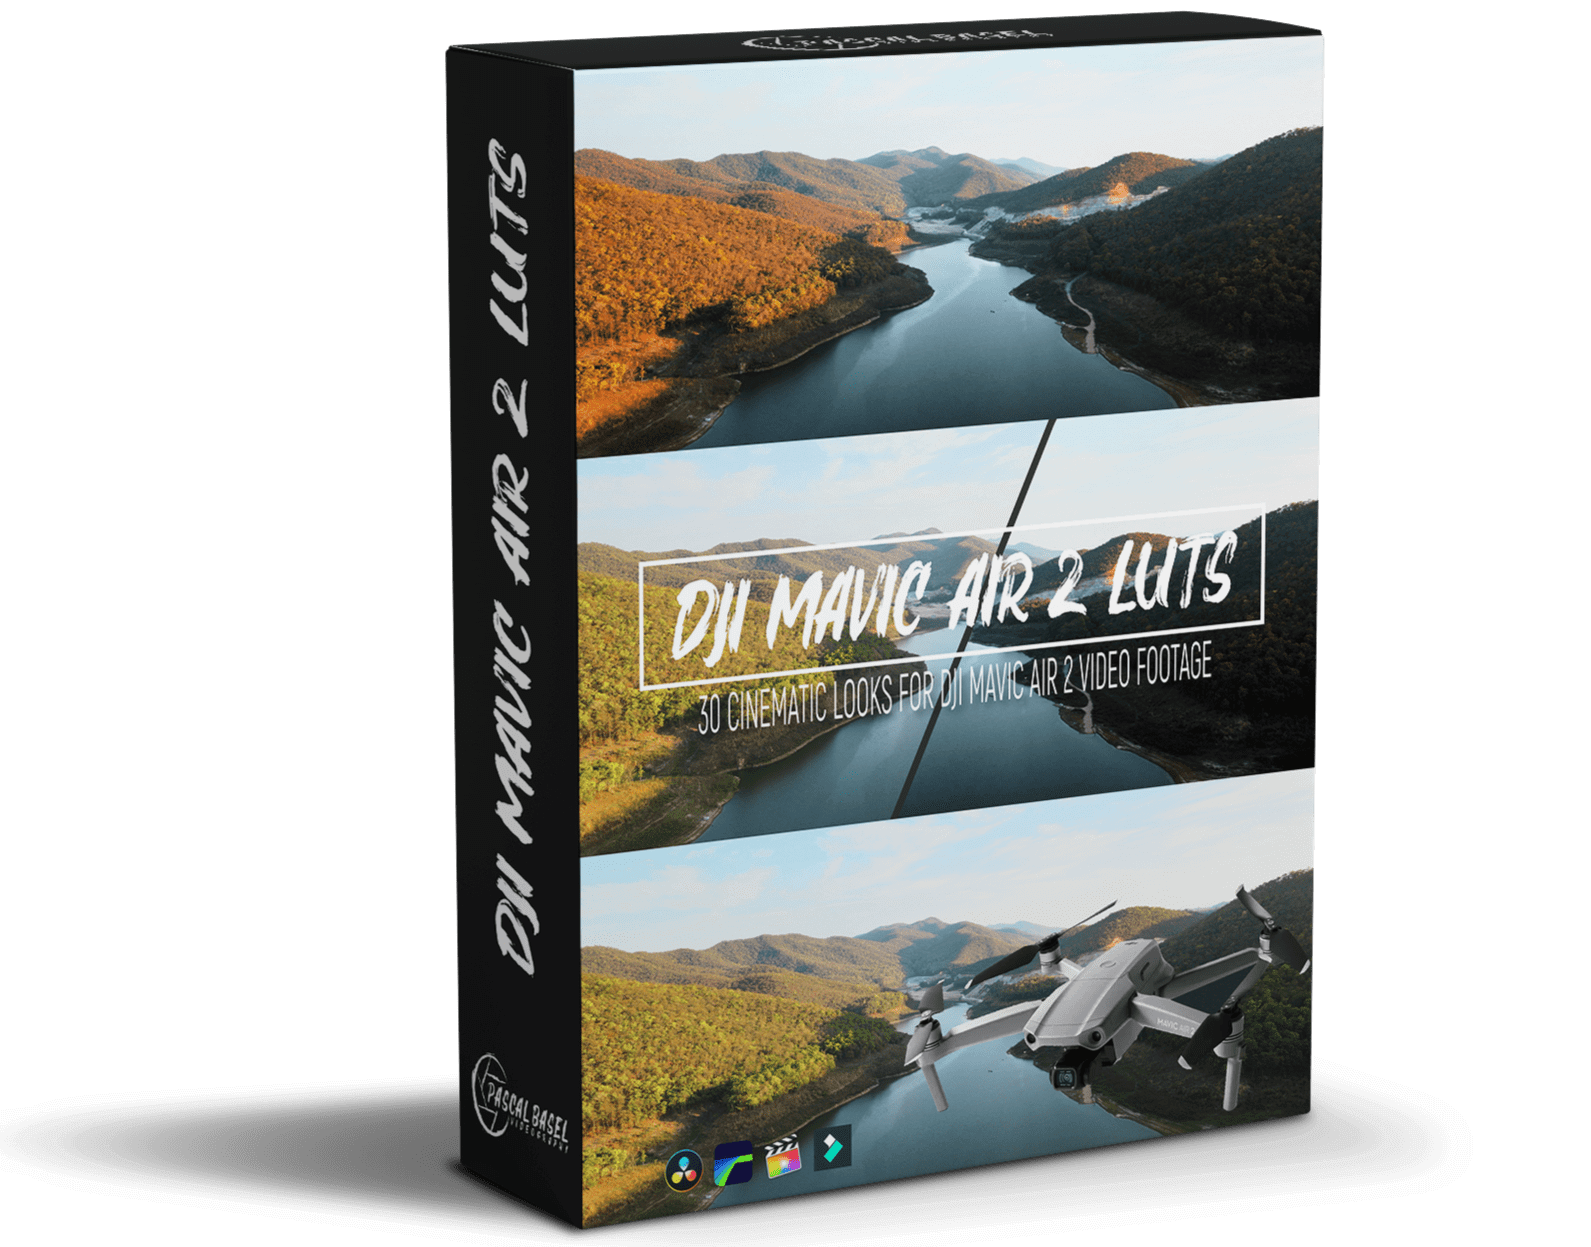 DJI Mavic Air 2 Cine LUTs